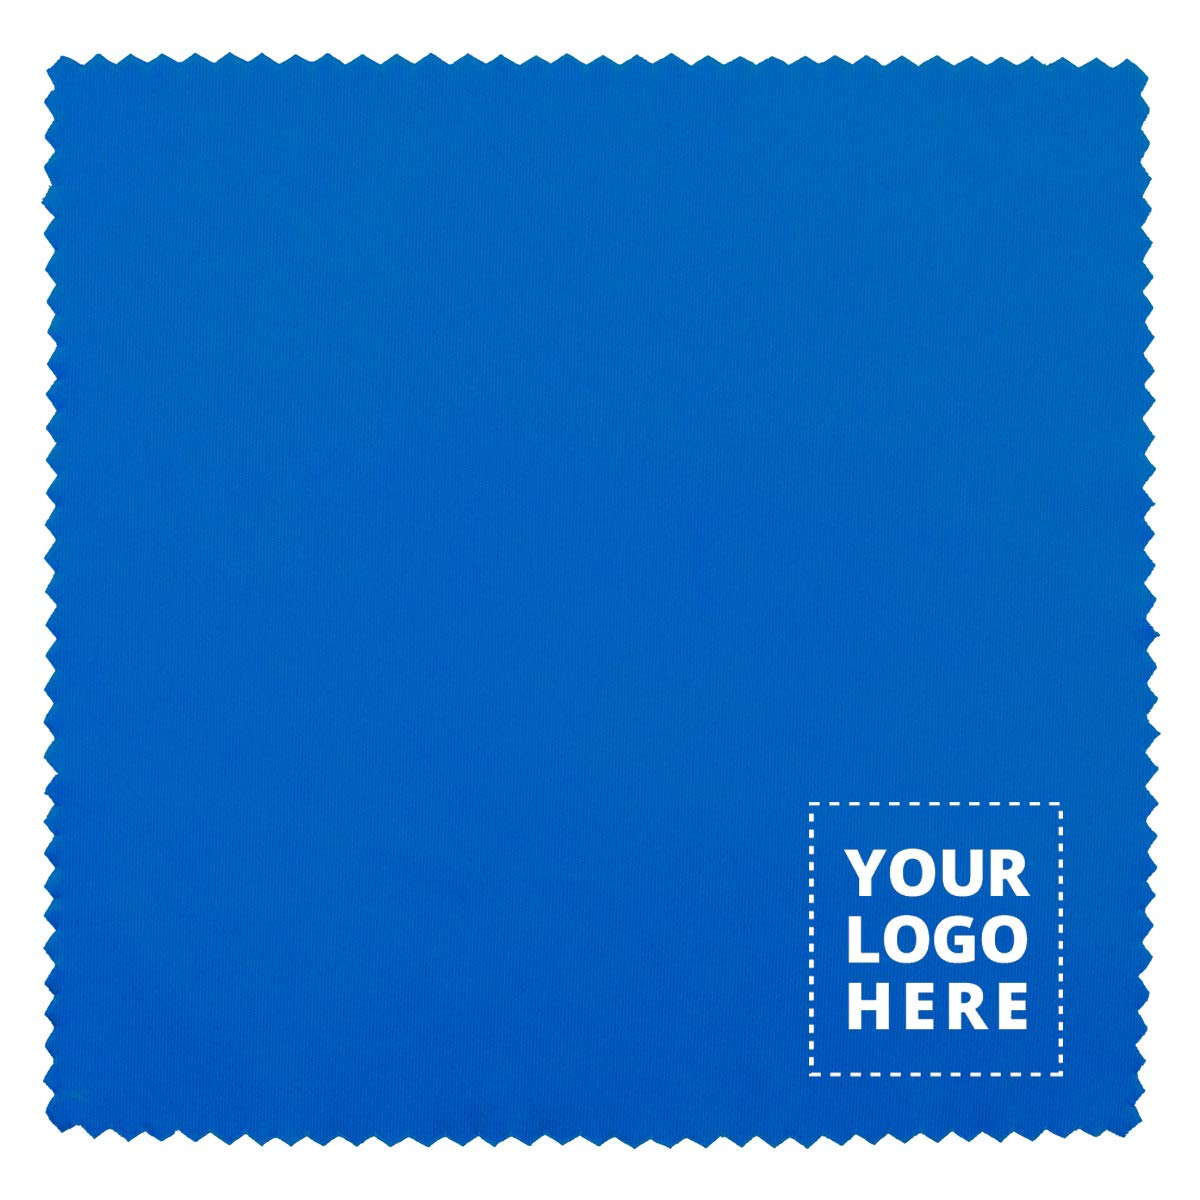 100% Microfiber Cleaning Cloth & Screen Cleaner - 250 Qty - Promotional Product Blue by Promo Direct